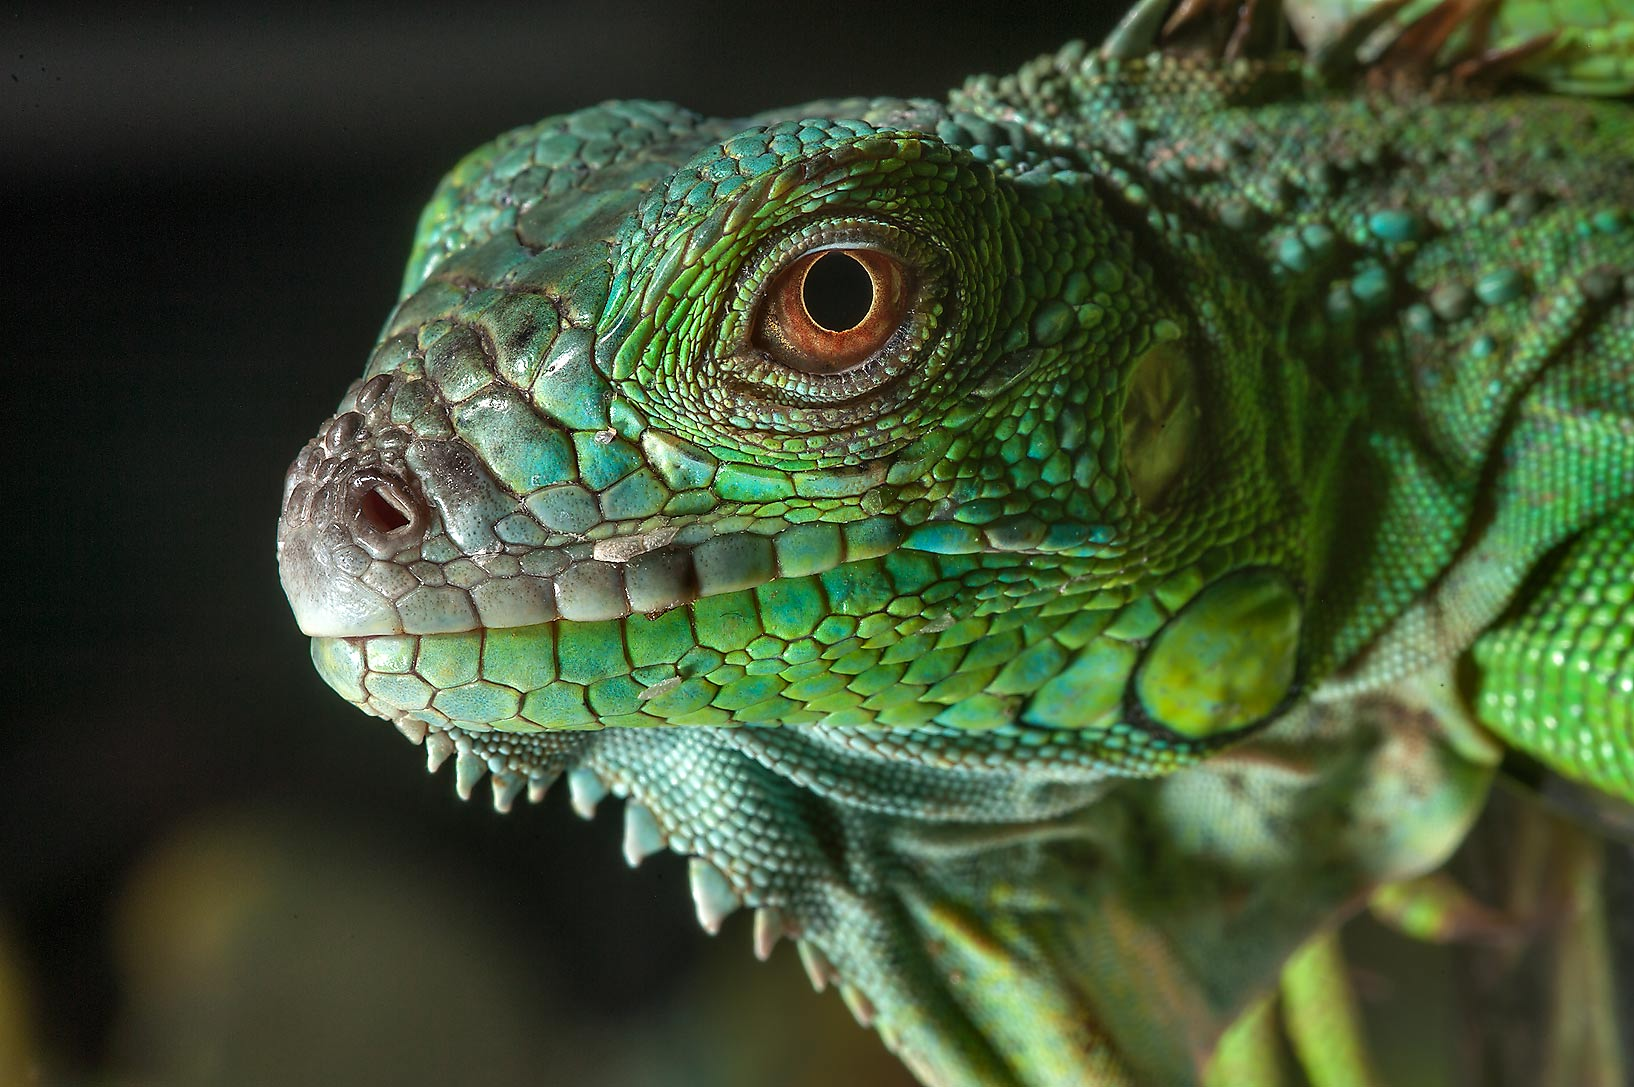 Green iguana lizard for sale in pet section of Souq Waqif (Old Market). Doha, Qatar